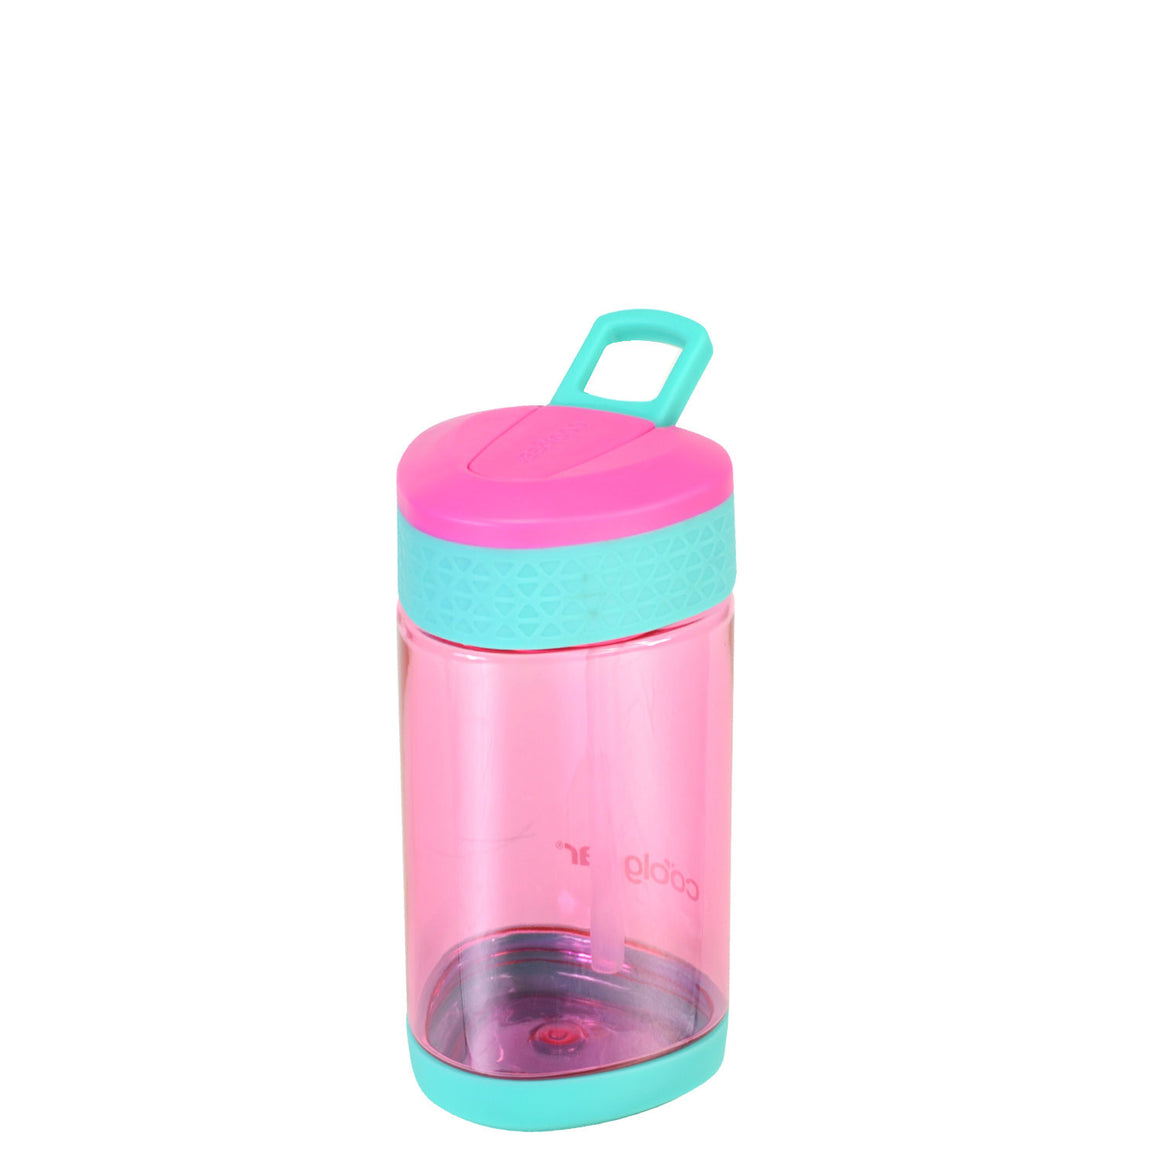 Green Titan 14 Oz Sipper Water Bottle at Cool Gear Kids,Water Bottles